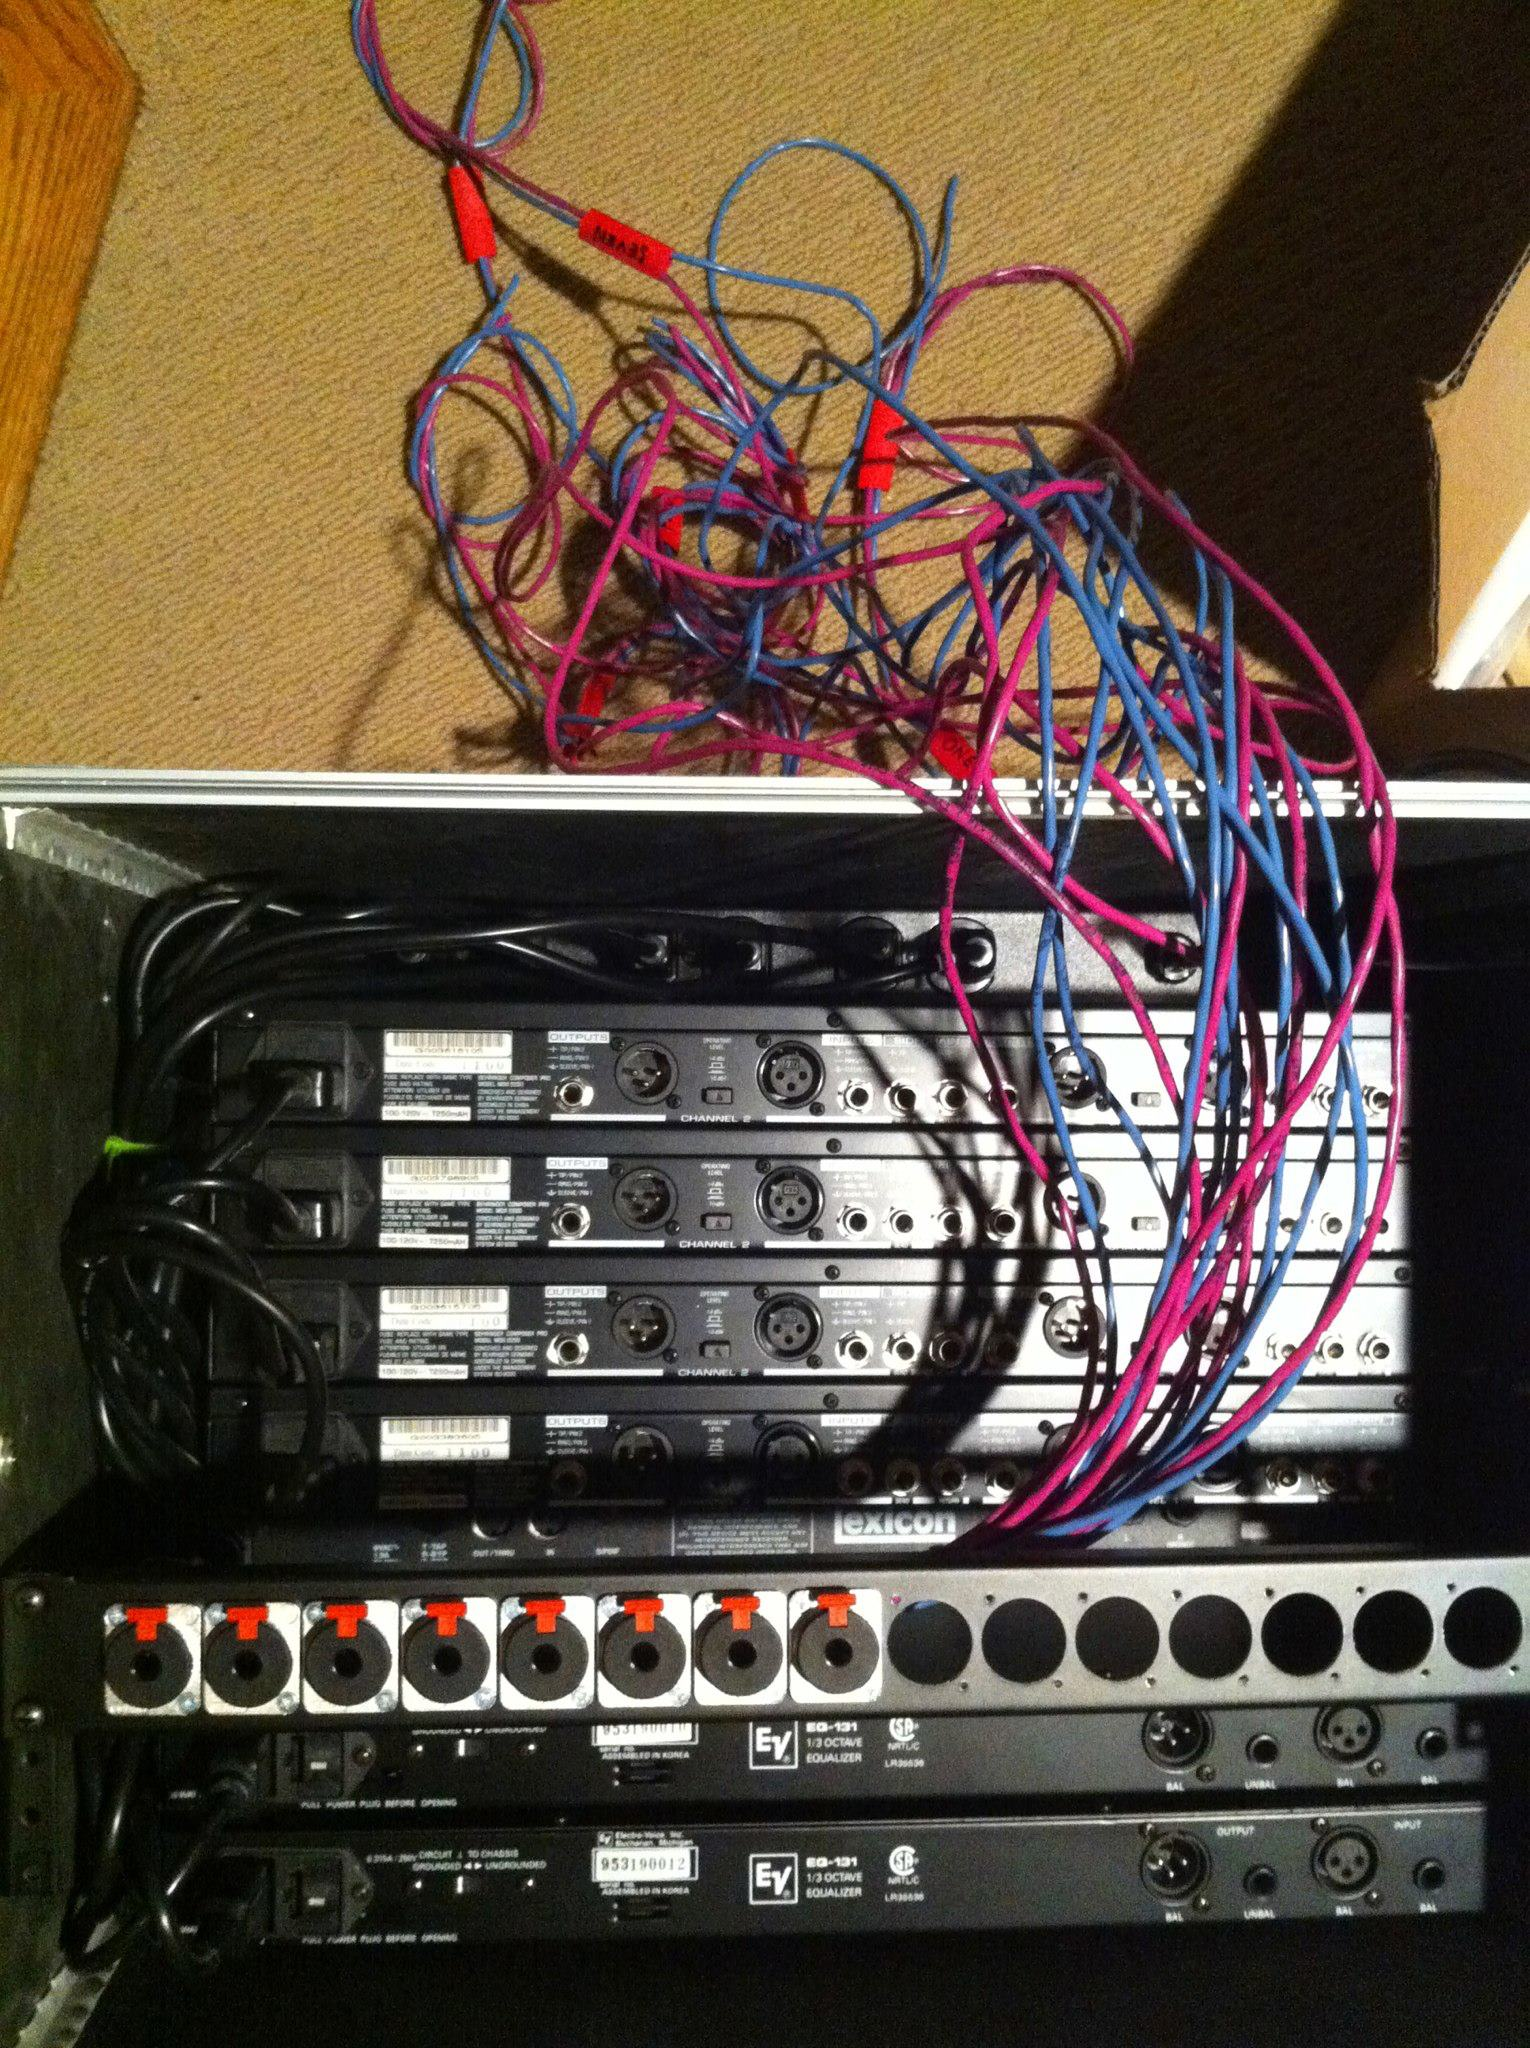 What does the back of your rack look like when you're wiring it?